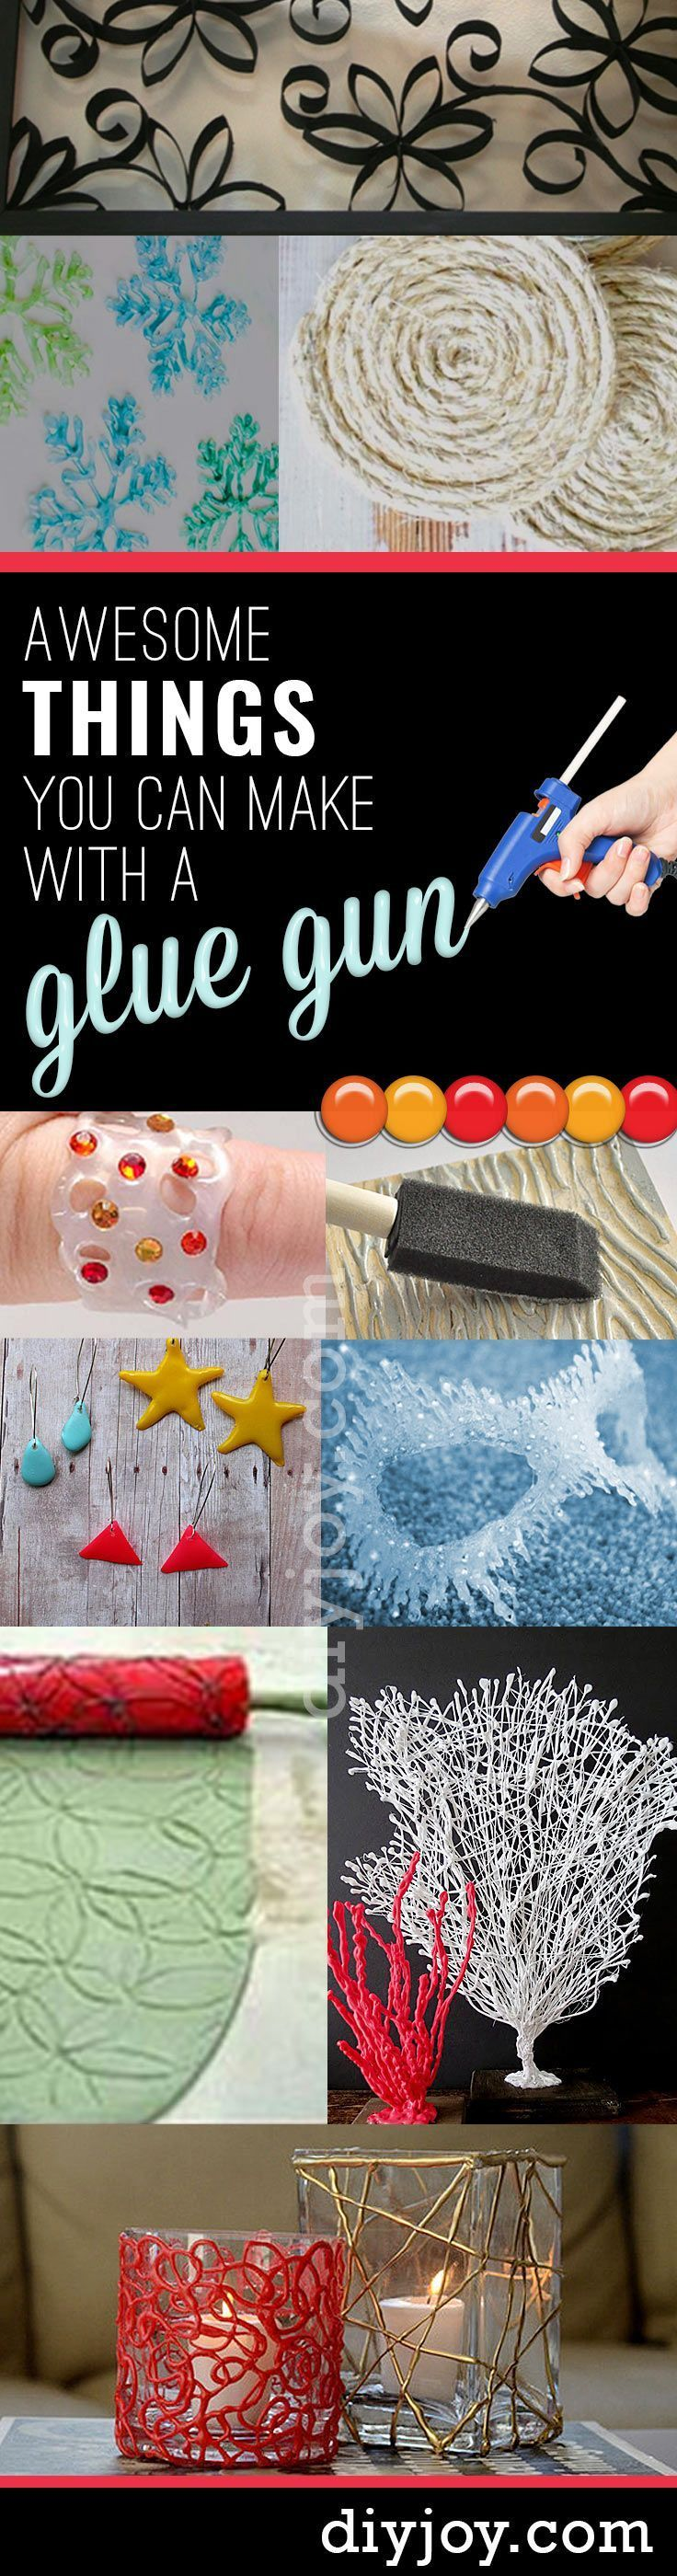 The 25 best ideas about glue gun crafts on pinterest for Cool things to make out of recycled materials